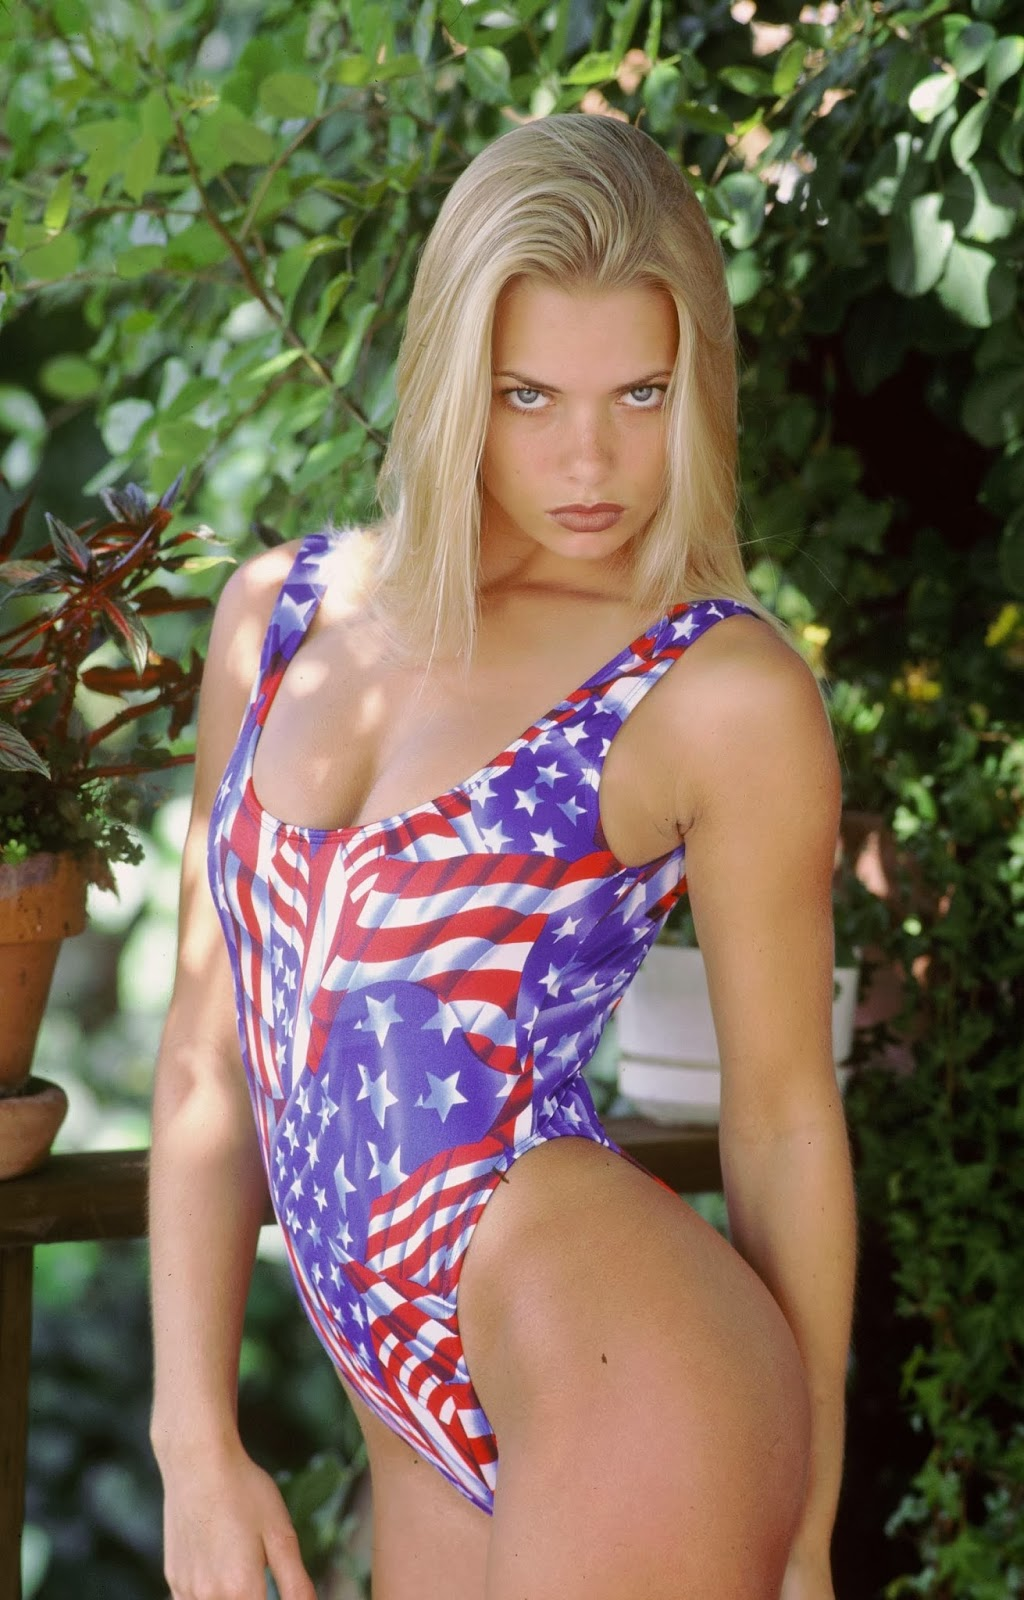 Young Jaime Pressly Looking Stunning In A Bikini (Pics)